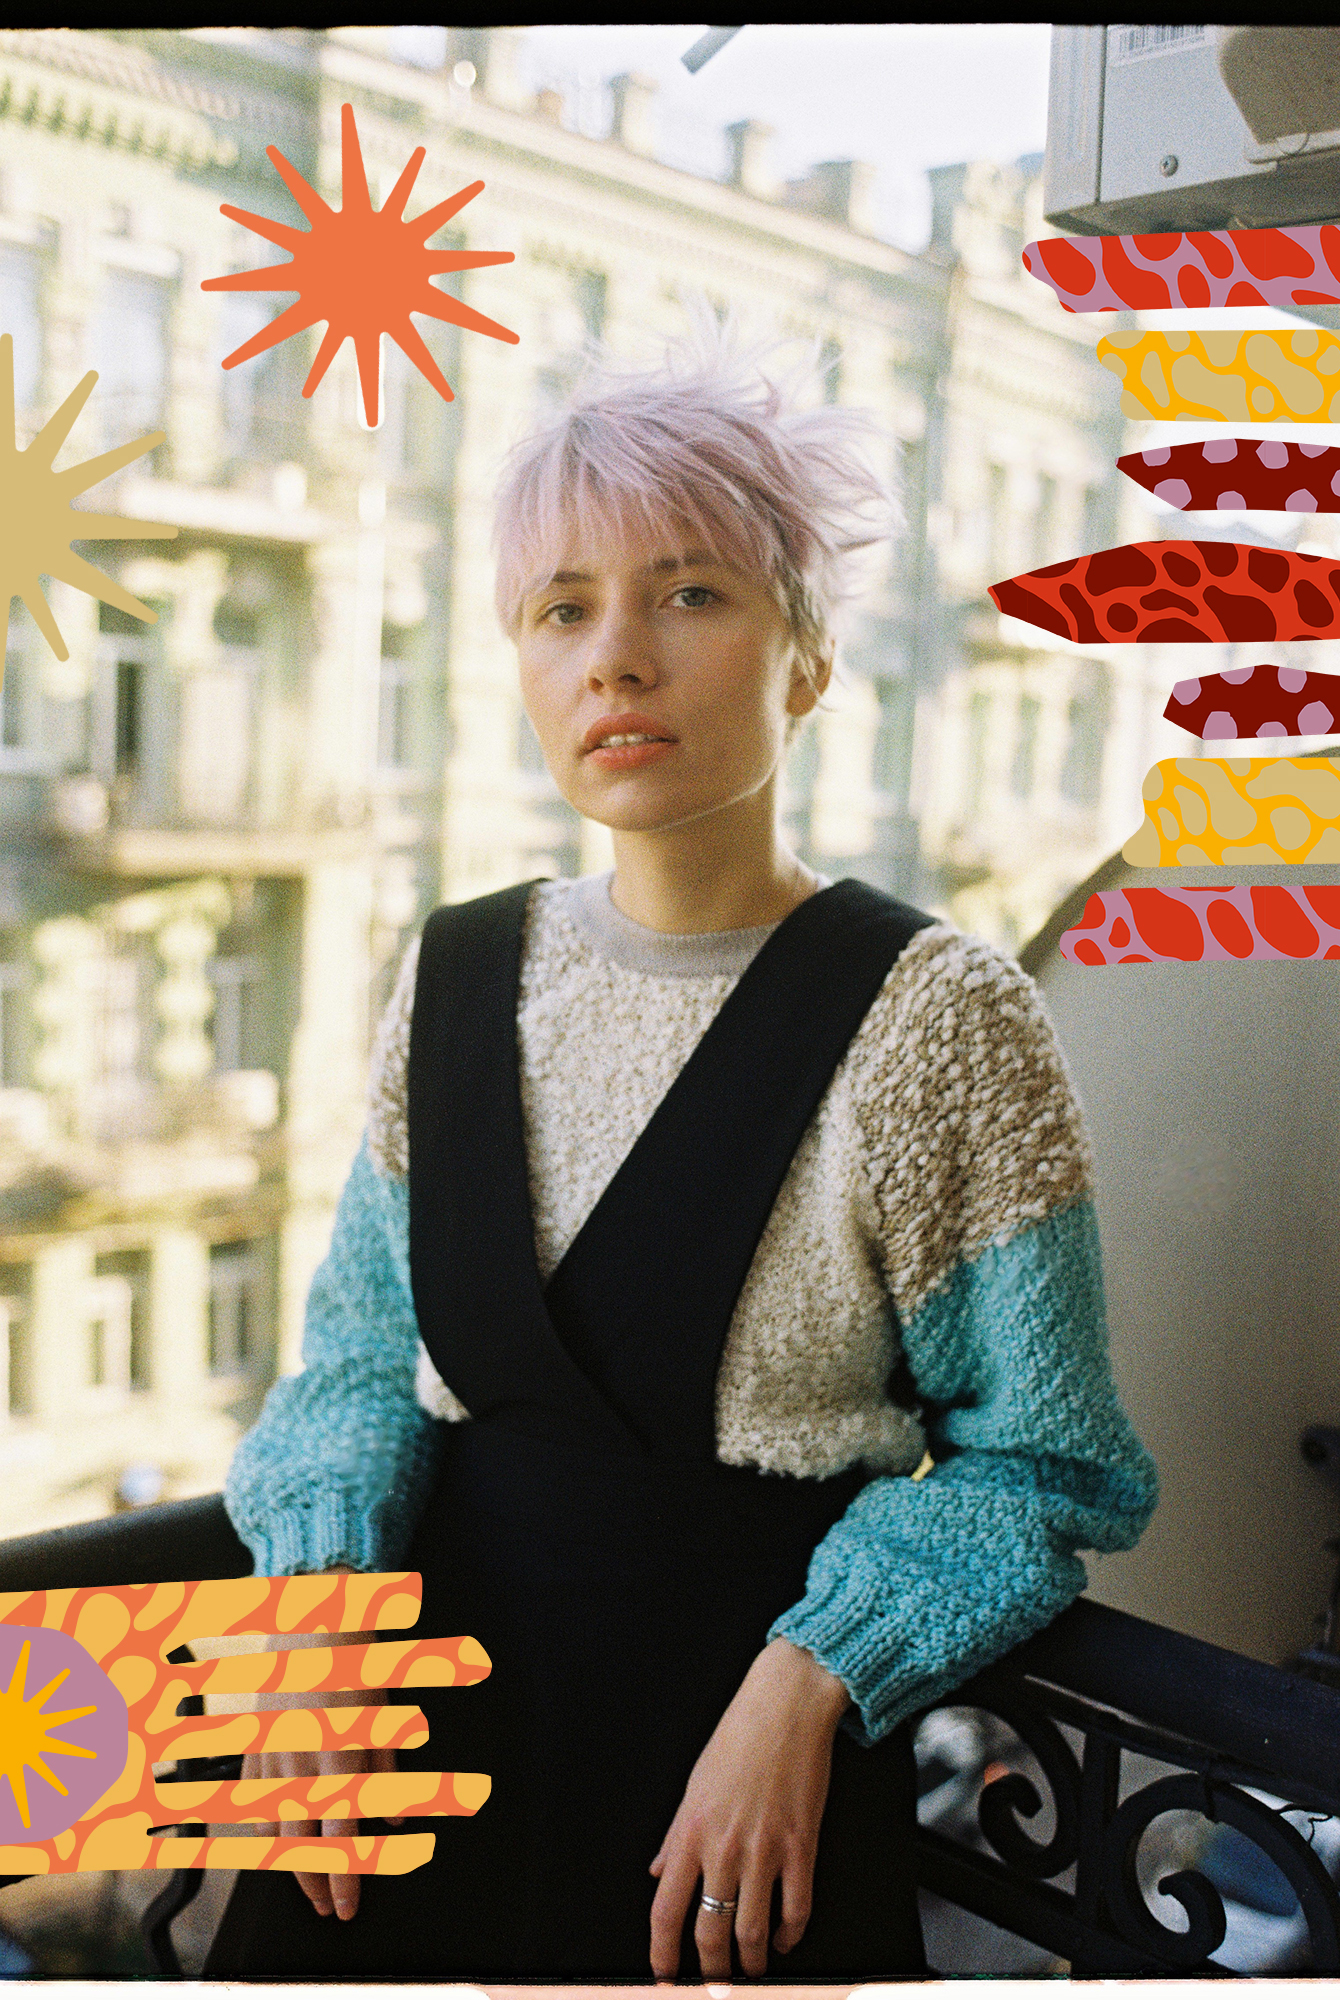 Introducing: Kate NV depicts everyday life in Moscow through otherworldly, playful electronica